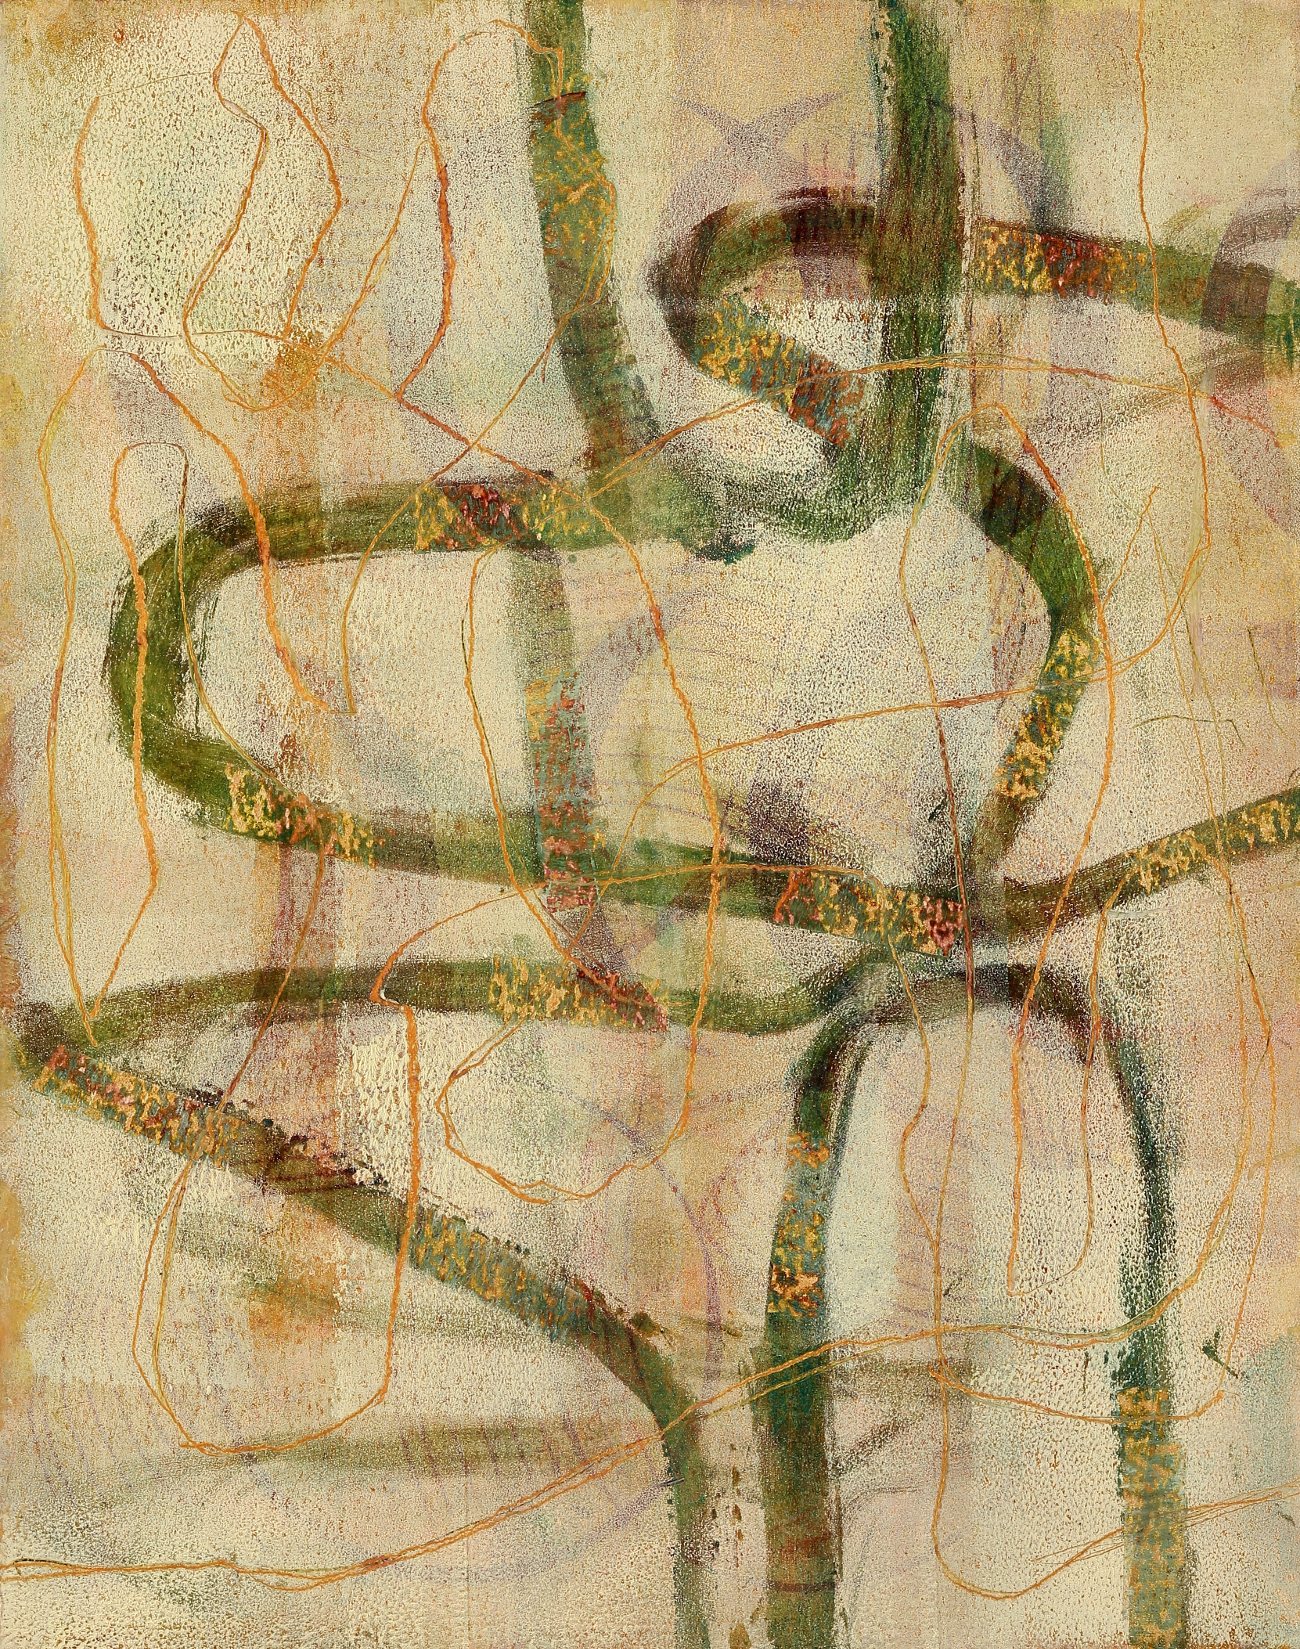 Entanglements #12, 2016, oil, mm on paper on panel, 14 x 11""